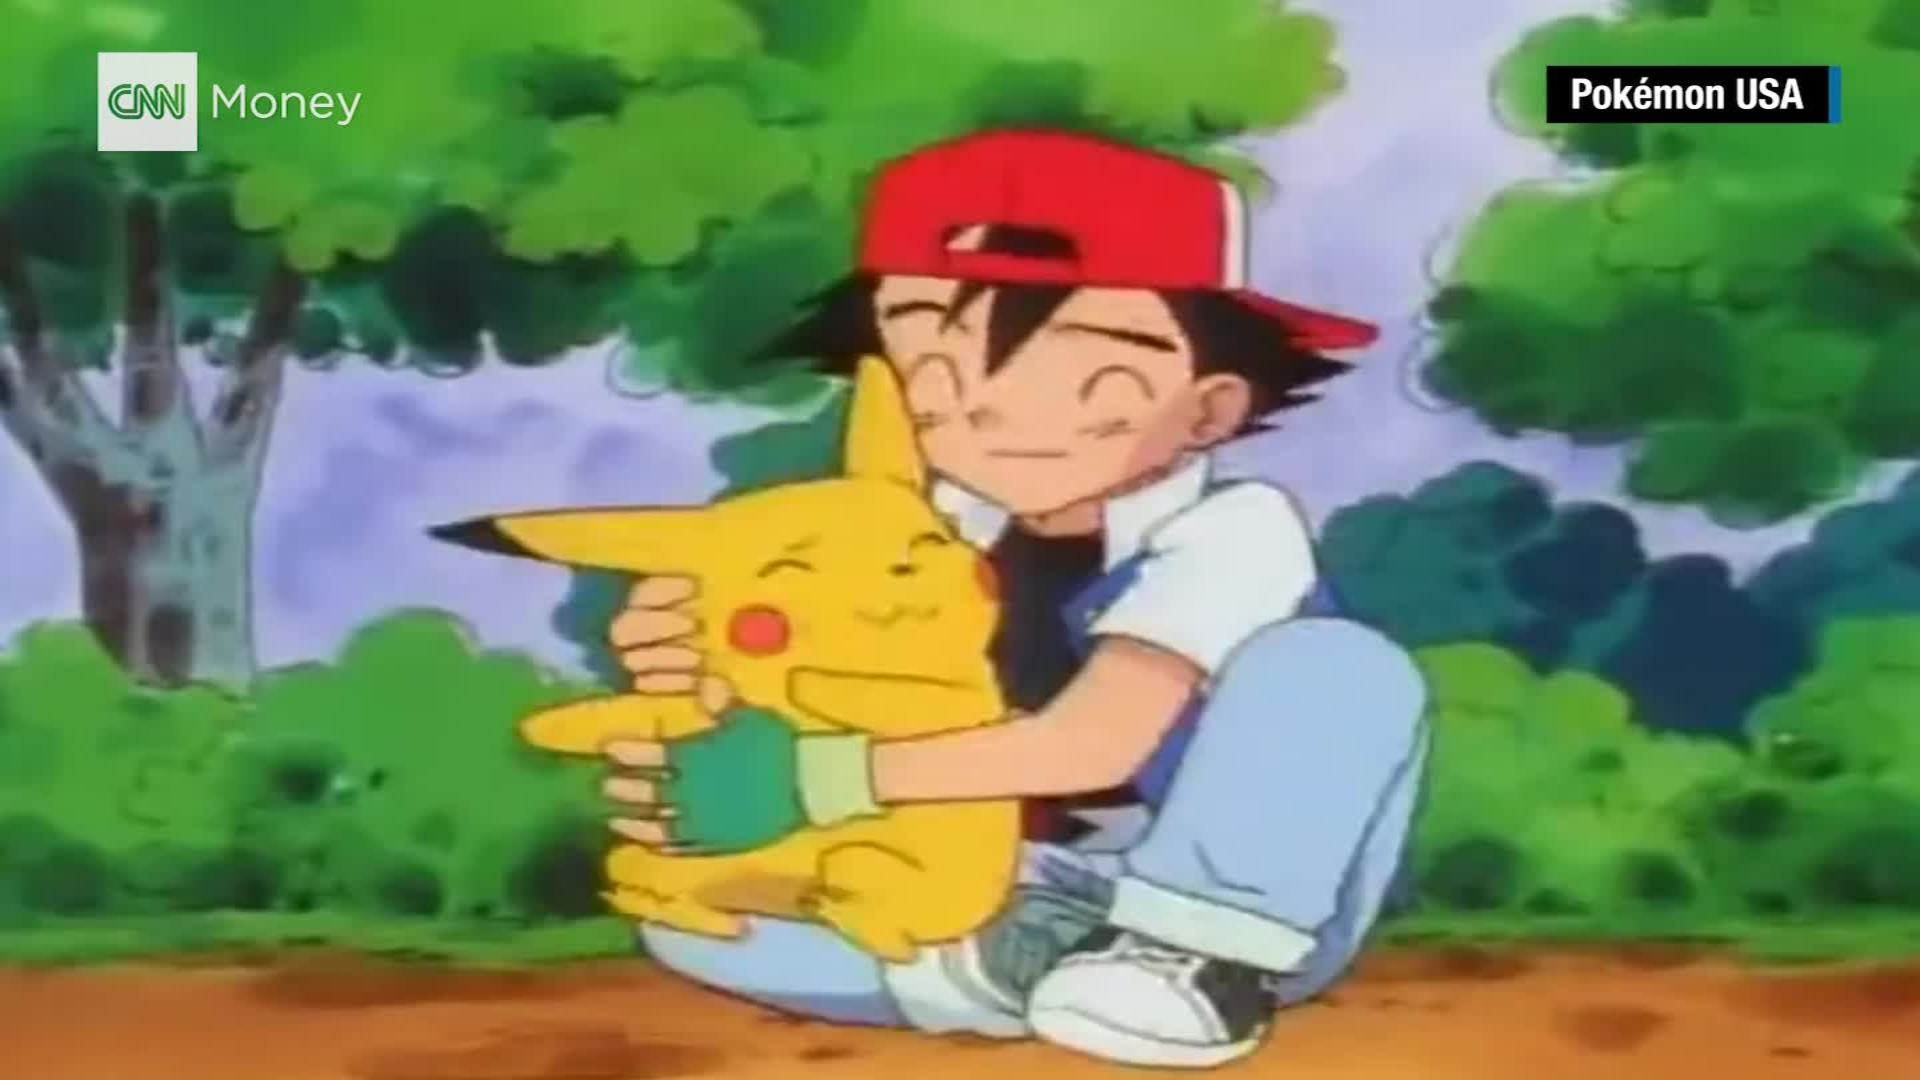 Bet on it pokemon theme all soccer betting sites